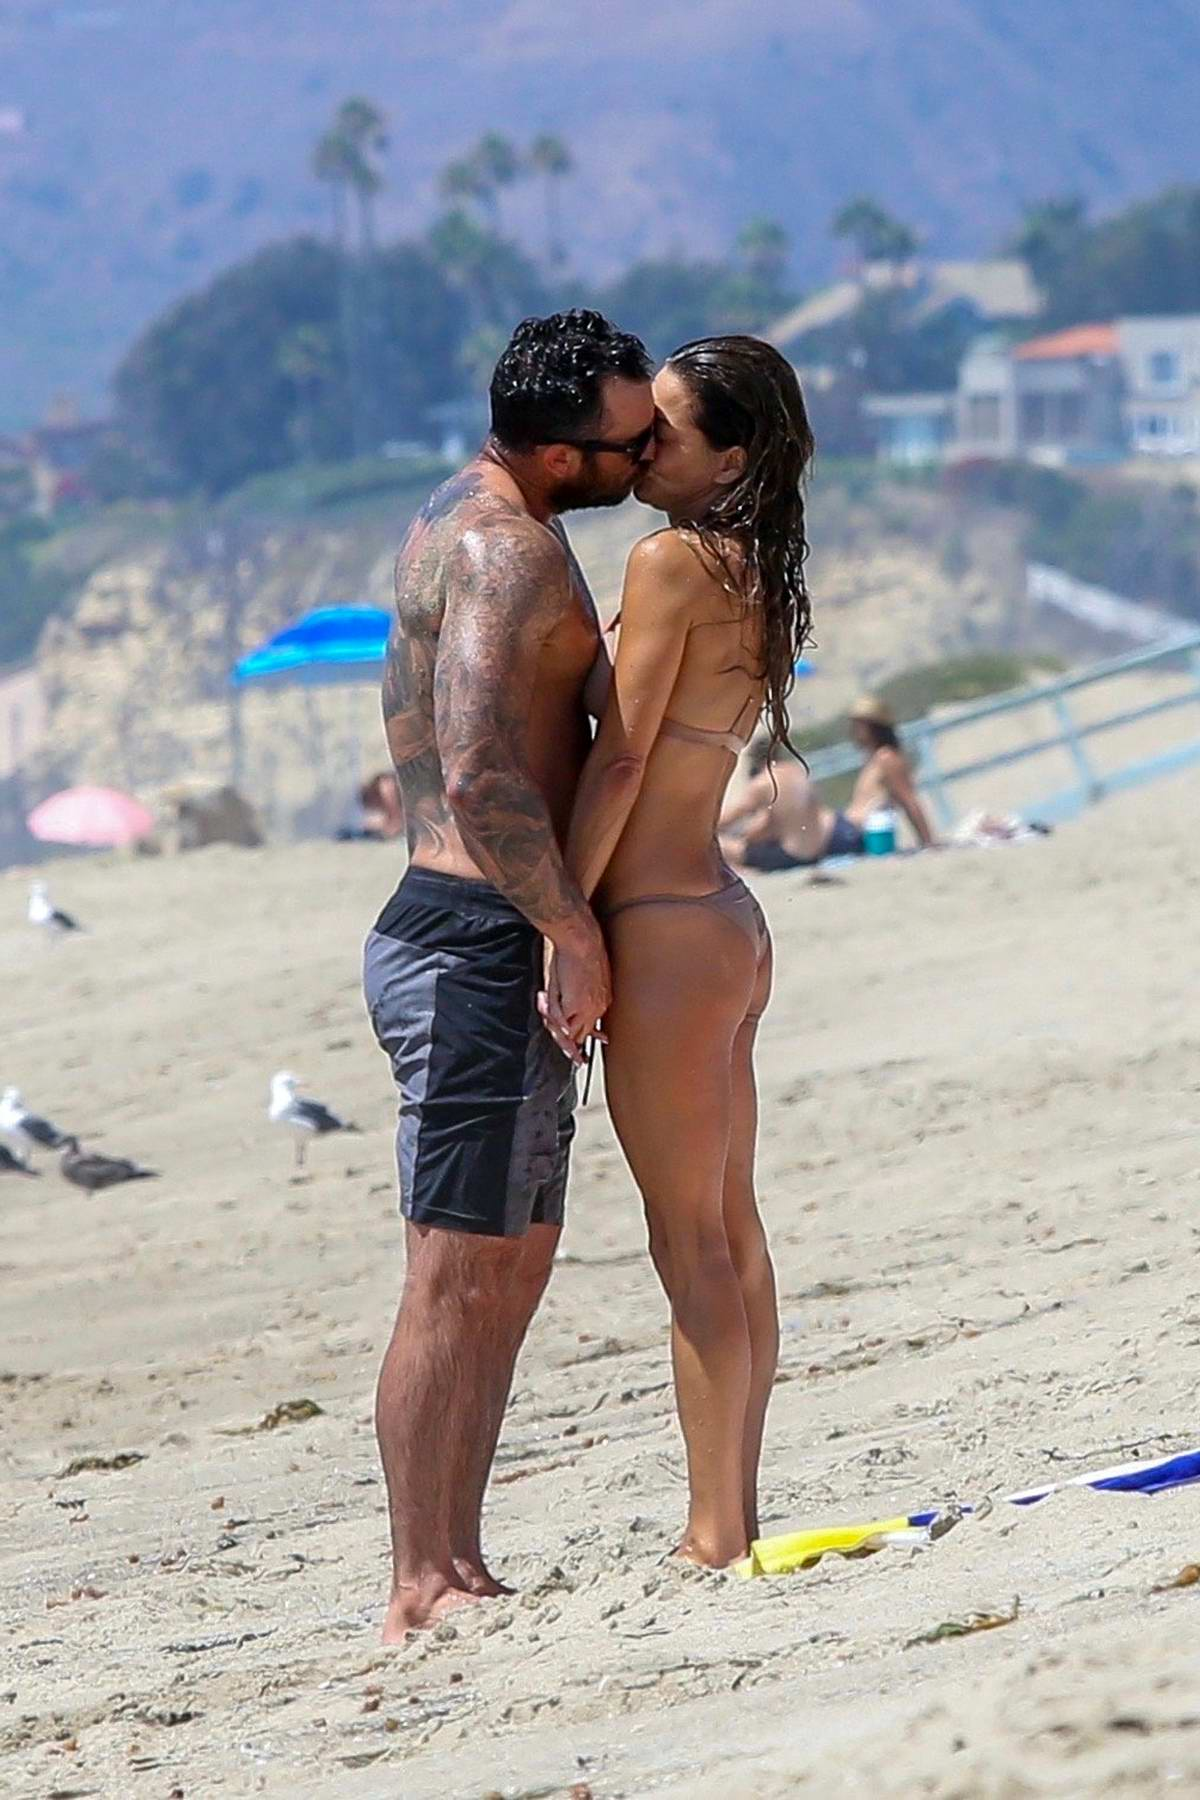 Brooke Burke spotted in a beige bikini as she packs on some PDA with her new boyfriend while on the beach in Malibu, California